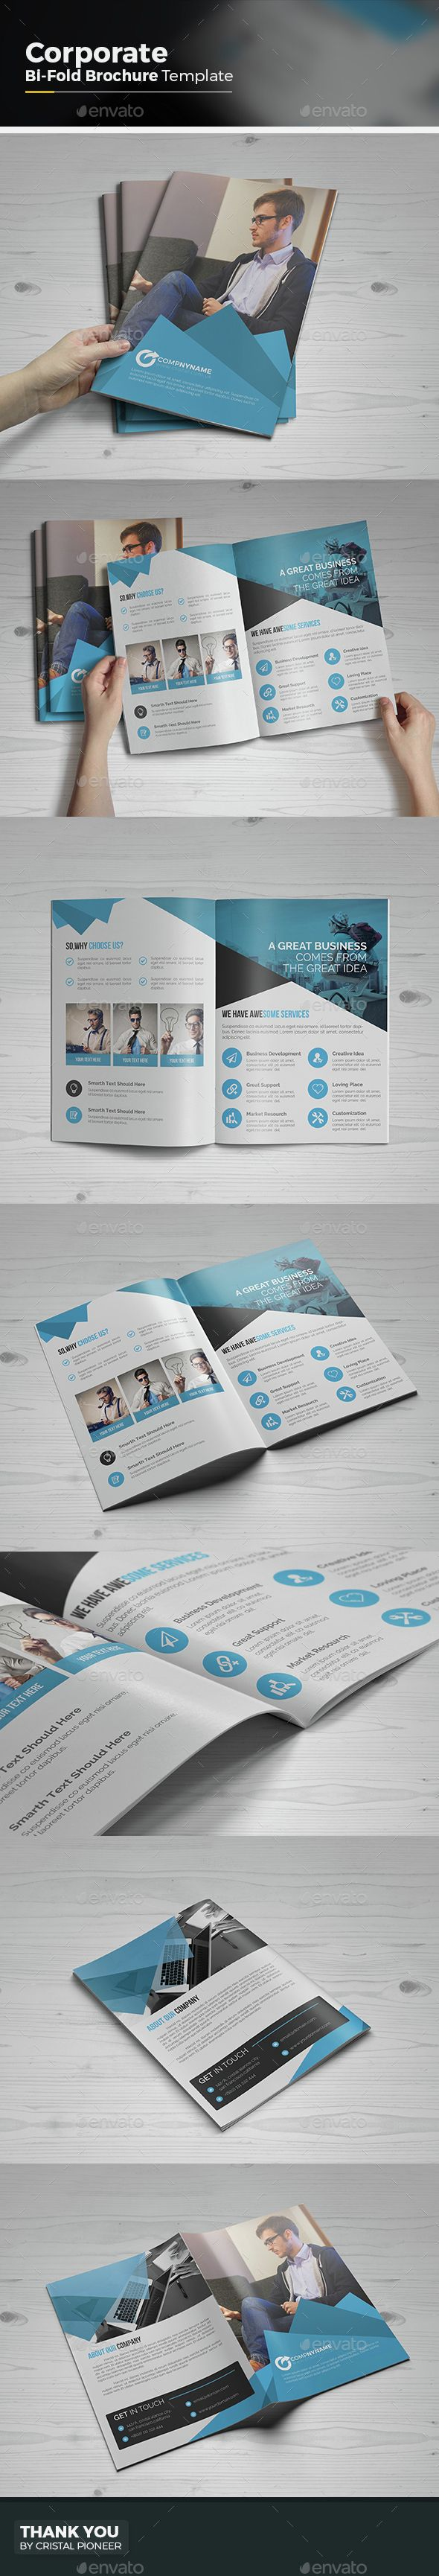 Corporate Bi Fold Brochure Template Vector EPS, AI. Download here: http://graphicriver.net/item/corporate-bi-fold-brochure/15278254?ref=ksioks